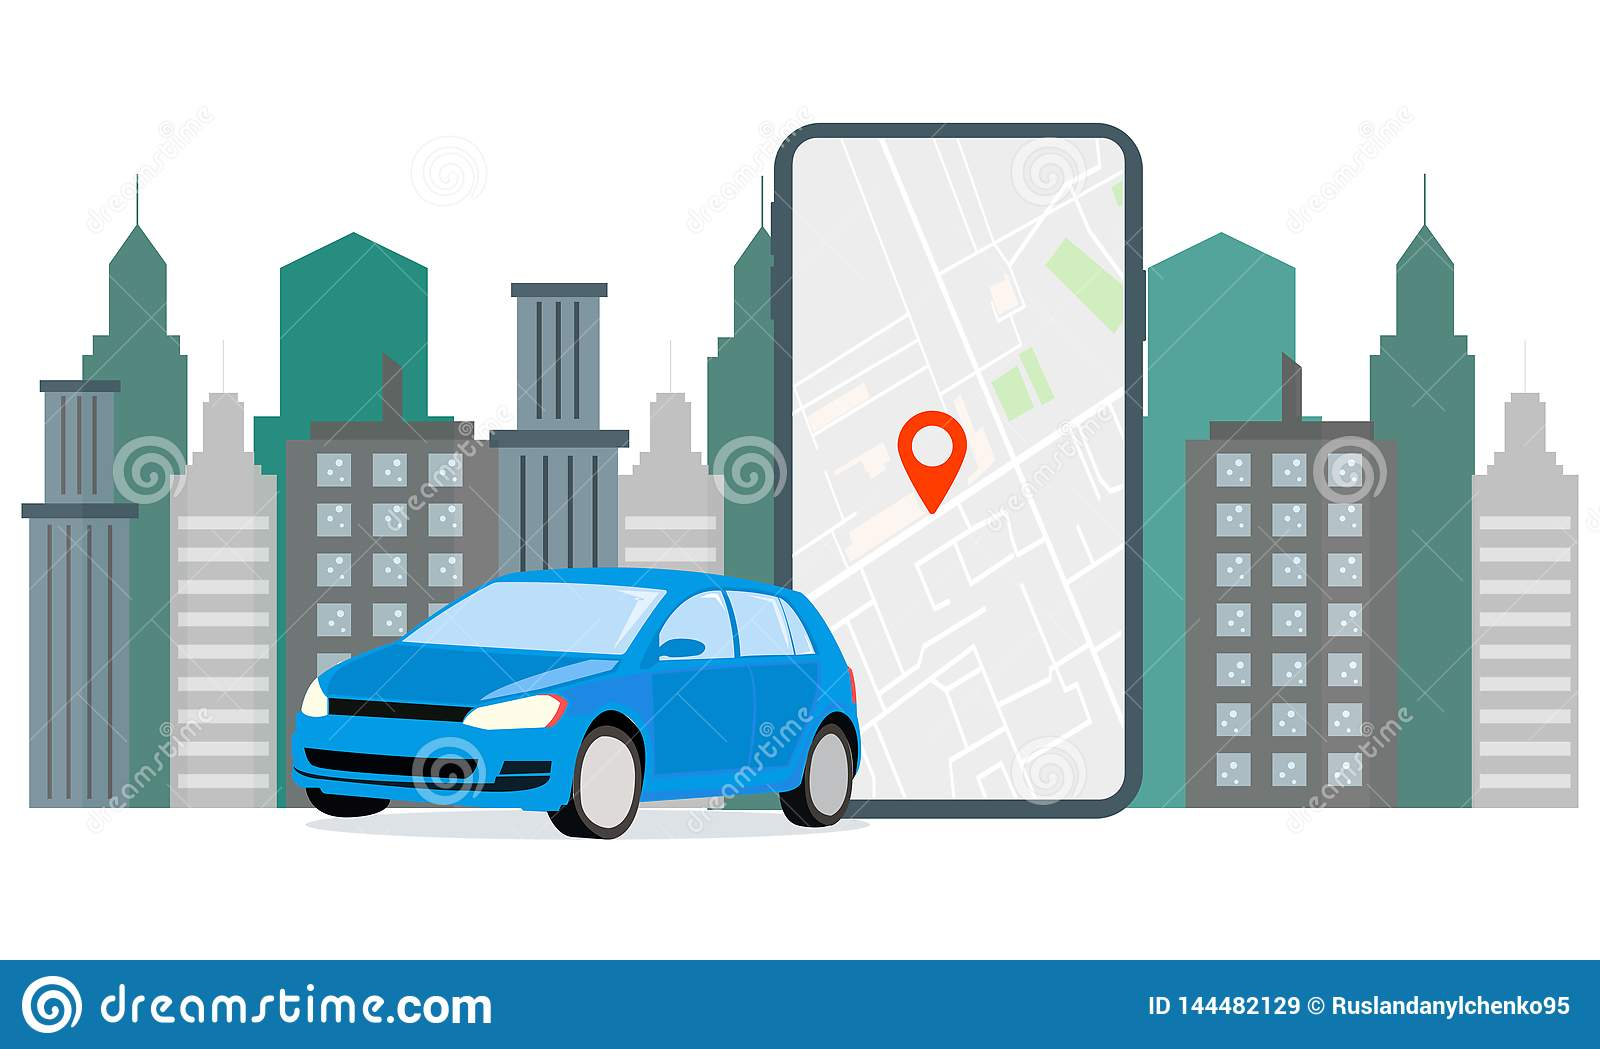 Banner Illustration Navigation Car Rental The Screen Displays Gps Data Car Parking Use Car Hire For Mobile Services Stock Vector Illustration Of Holding Data 144482129